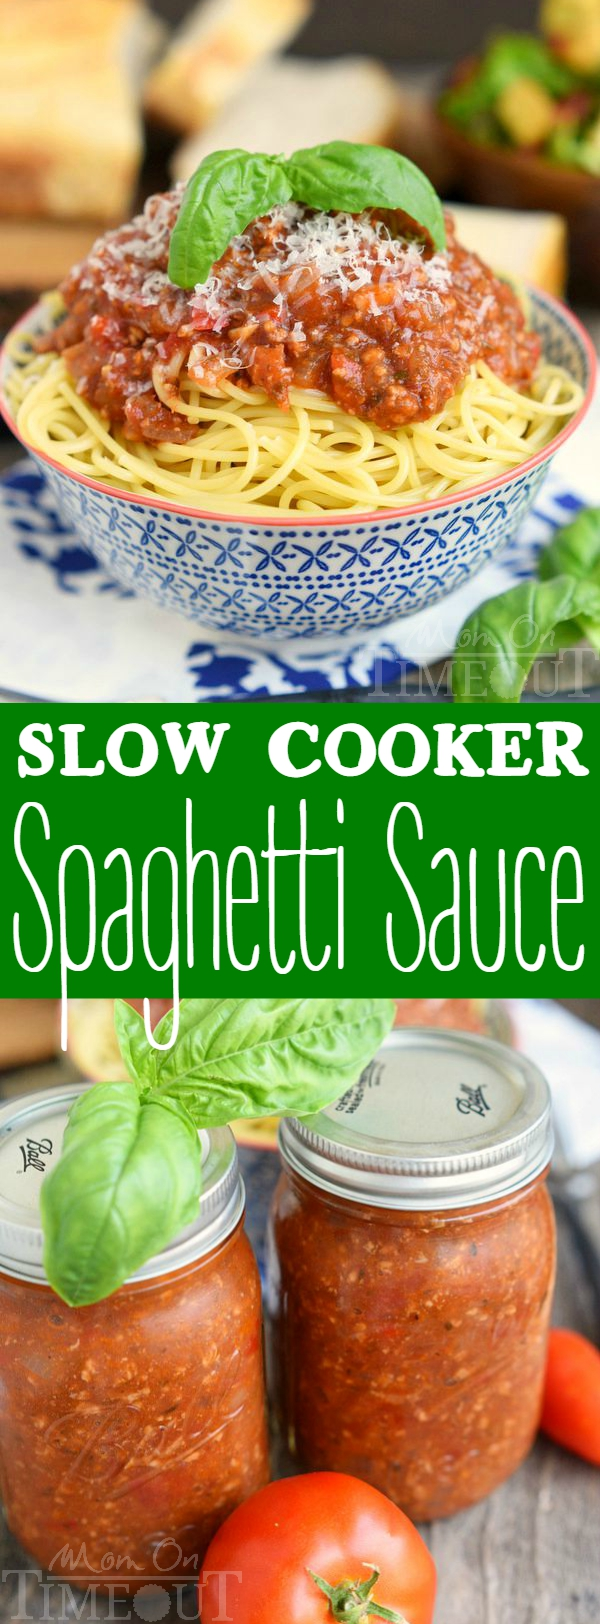 This Slow Cooker Spaghetti Sauce is the perfect dinner solution for busy weeknights! Easy and delicious!